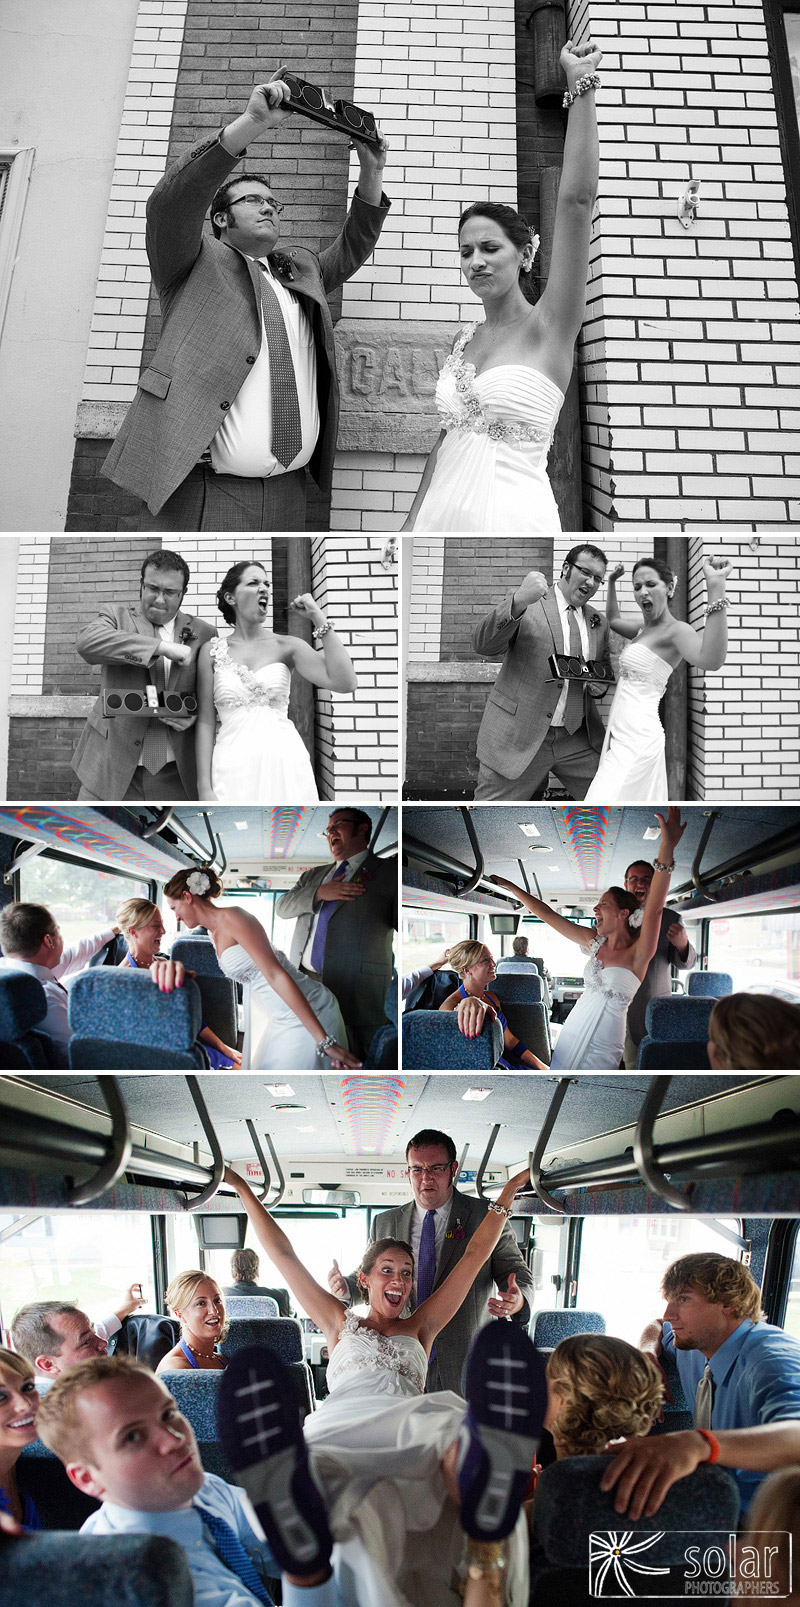 Say Anything wedding tribute and fun on a bus.